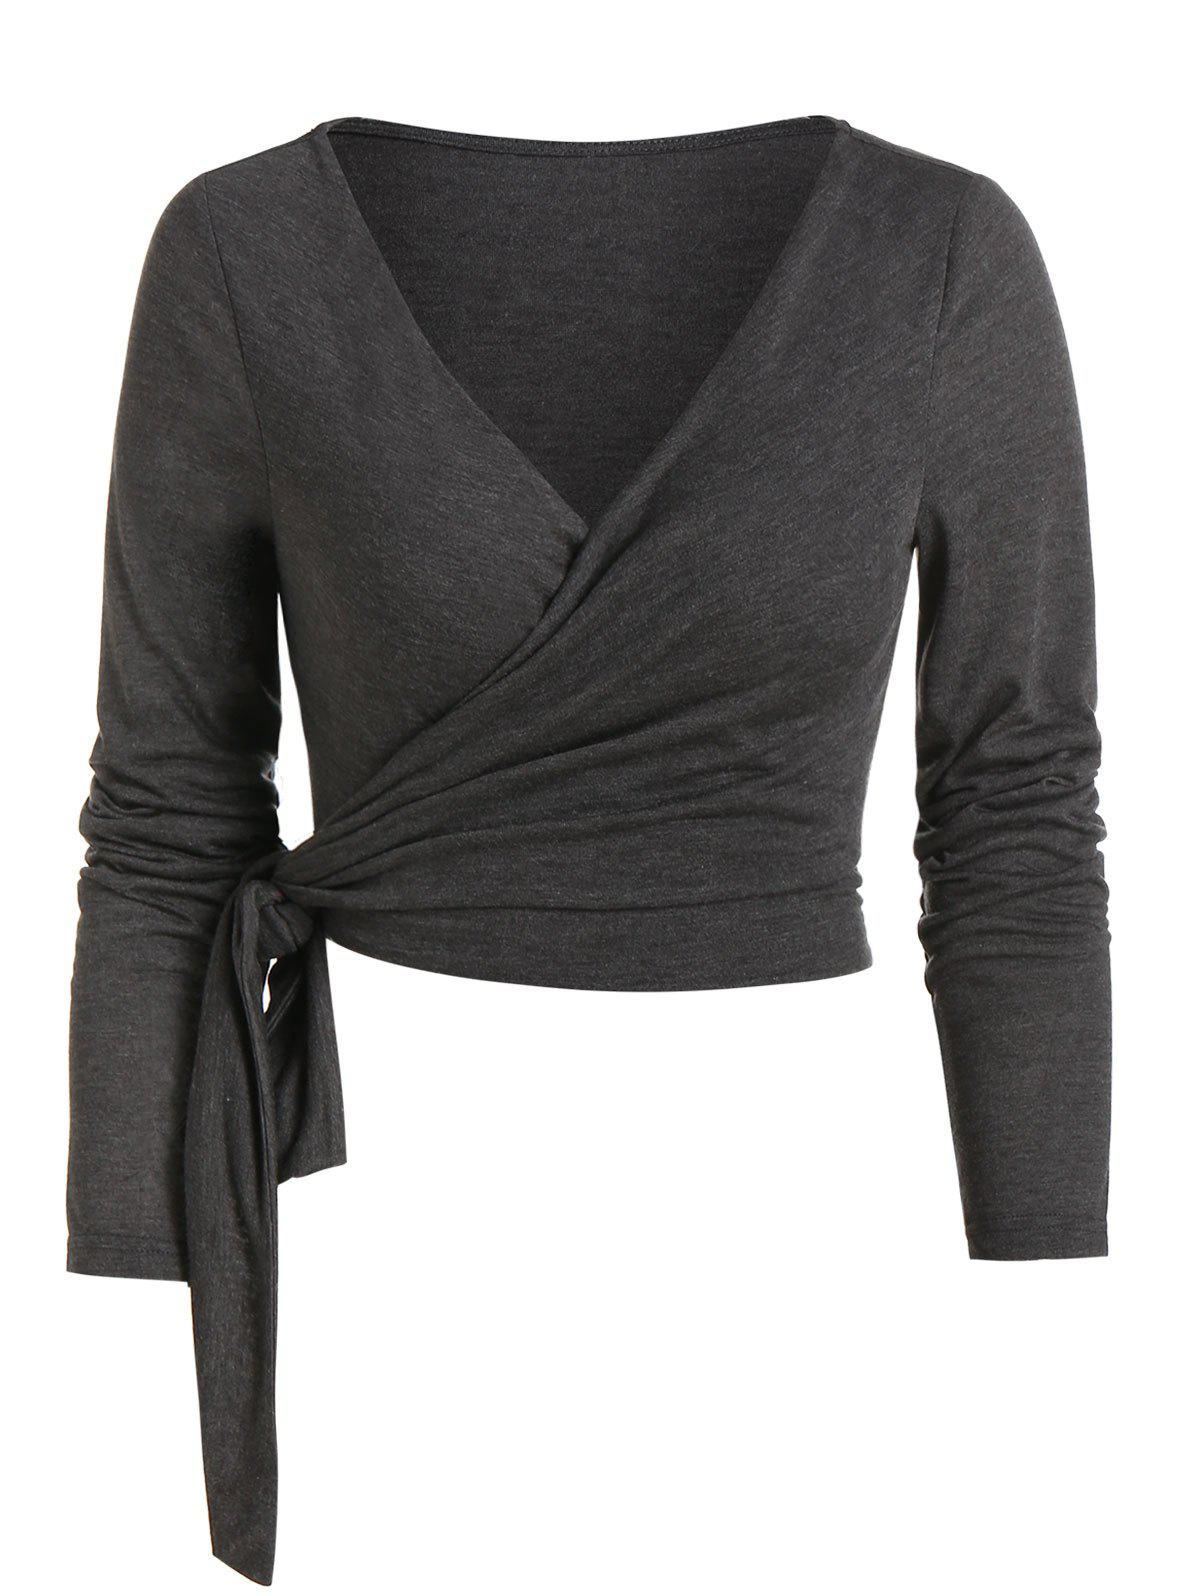 Heathered Knotted Cropped Wrap T-shirt - DARK GRAY M